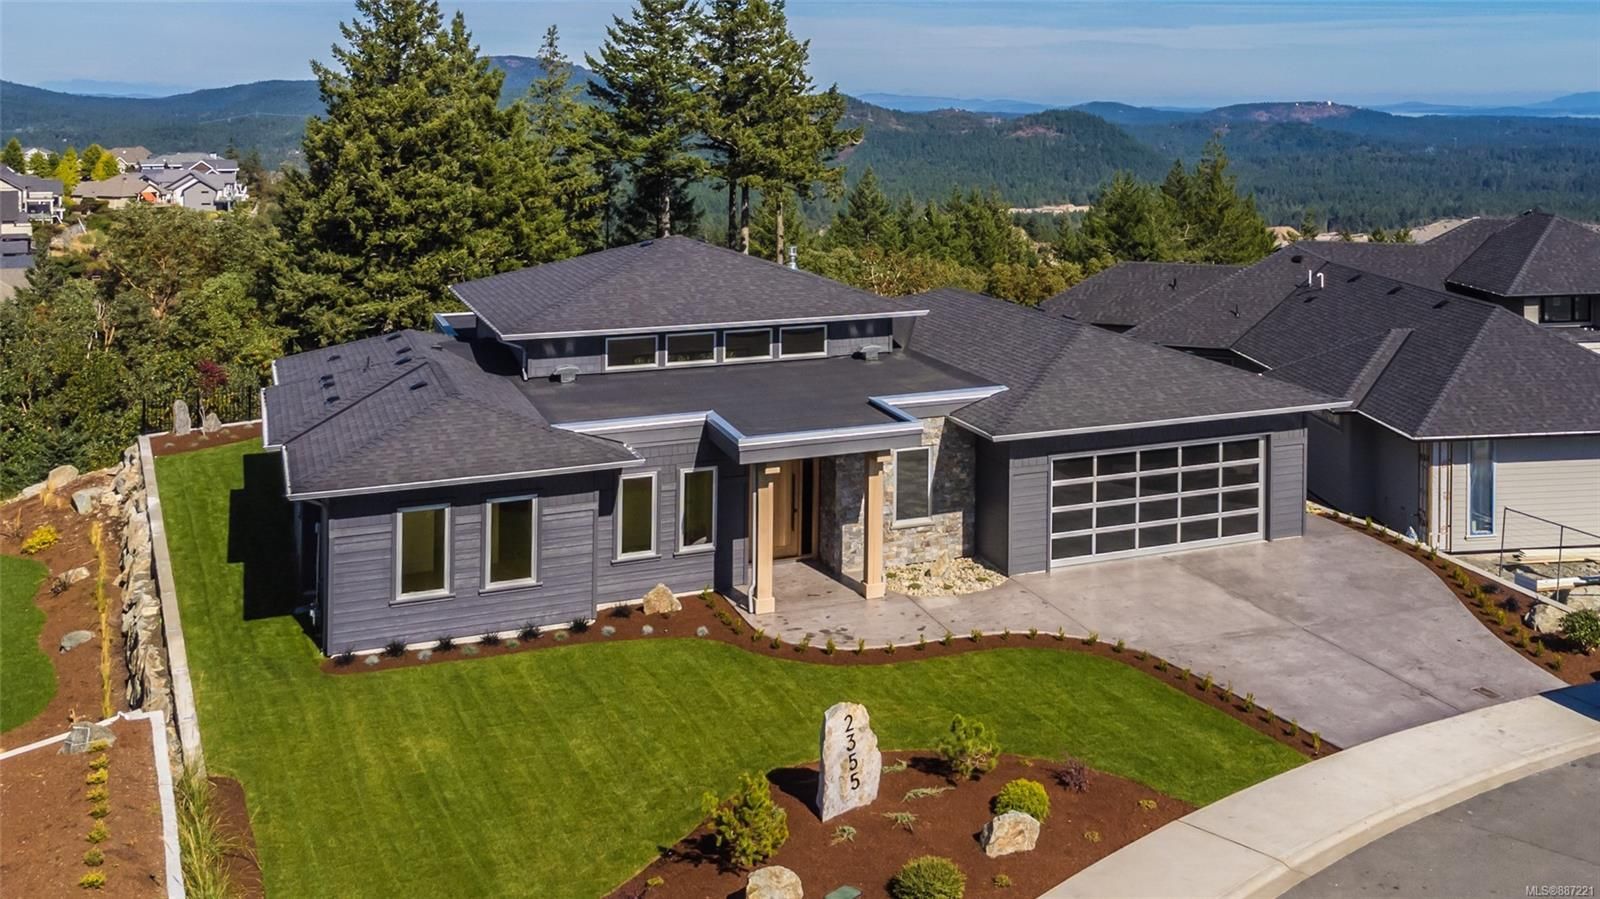 Main Photo: 2355 Lairds Gate in : La Bear Mountain House for sale (Langford)  : MLS®# 887221